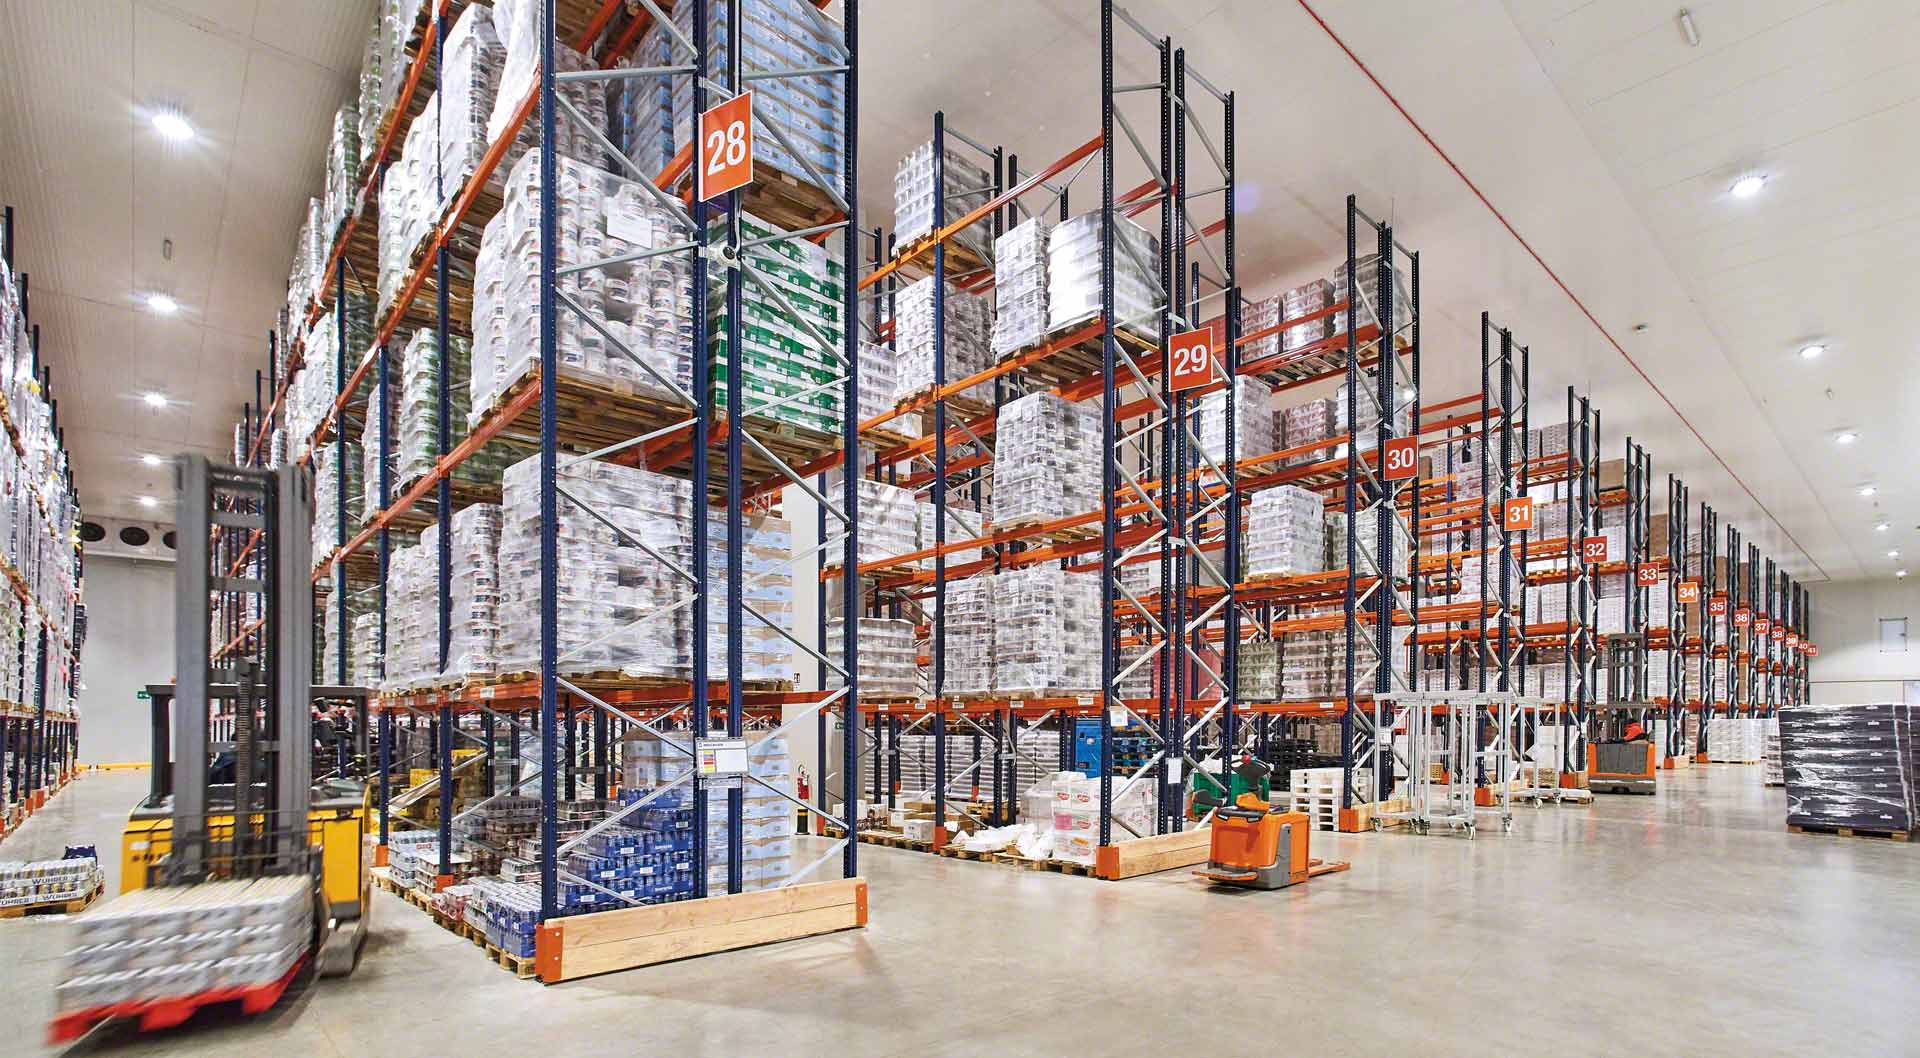 M25P4 cold-store-racking-warehouse